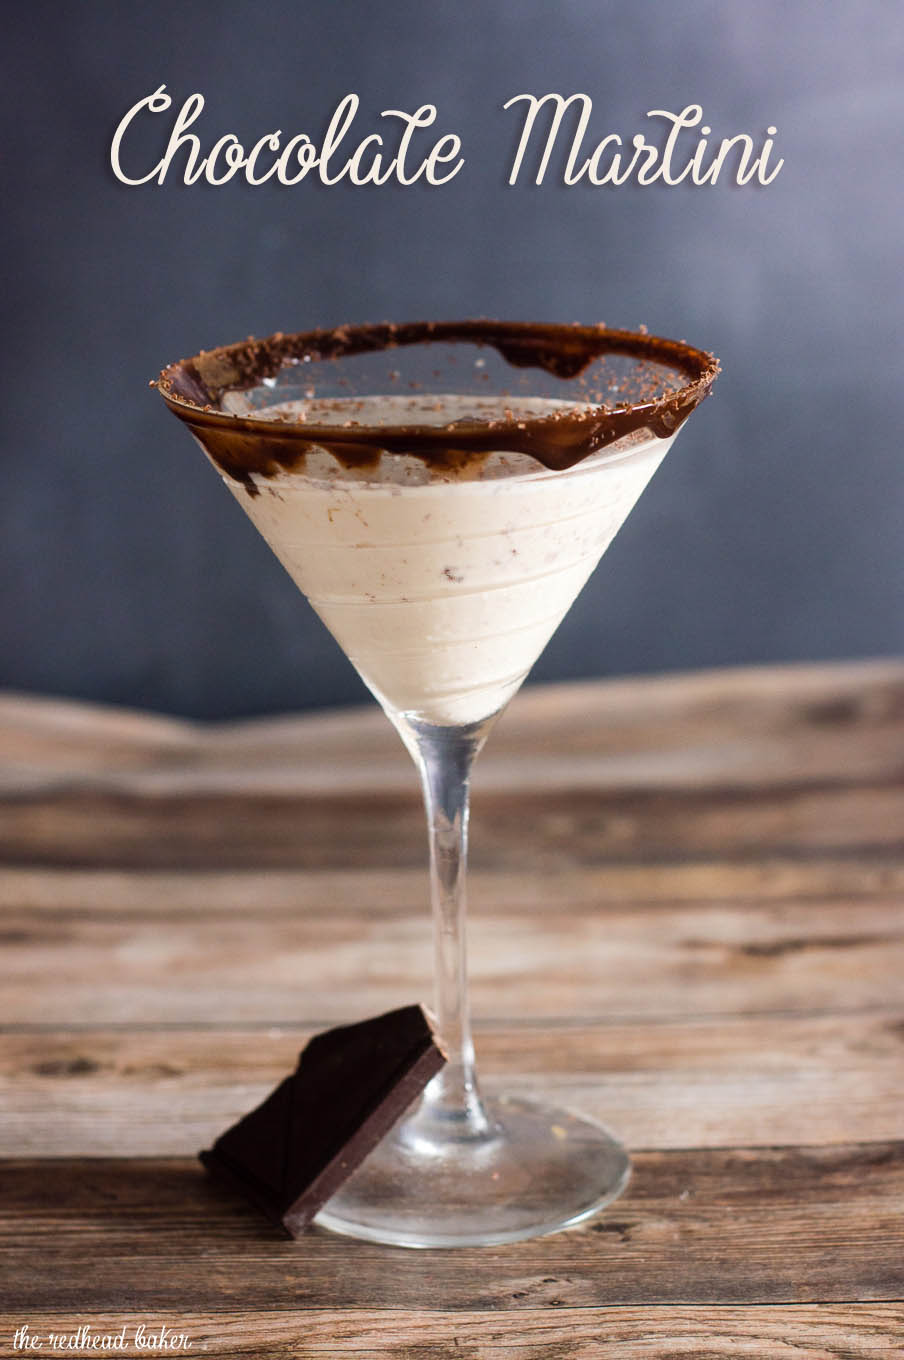 Chocoholics will love this chocolate martini, with chocolate liqueur and creme de cacao, and a double-chocolate coated martini glass rim. #Choctoberfest